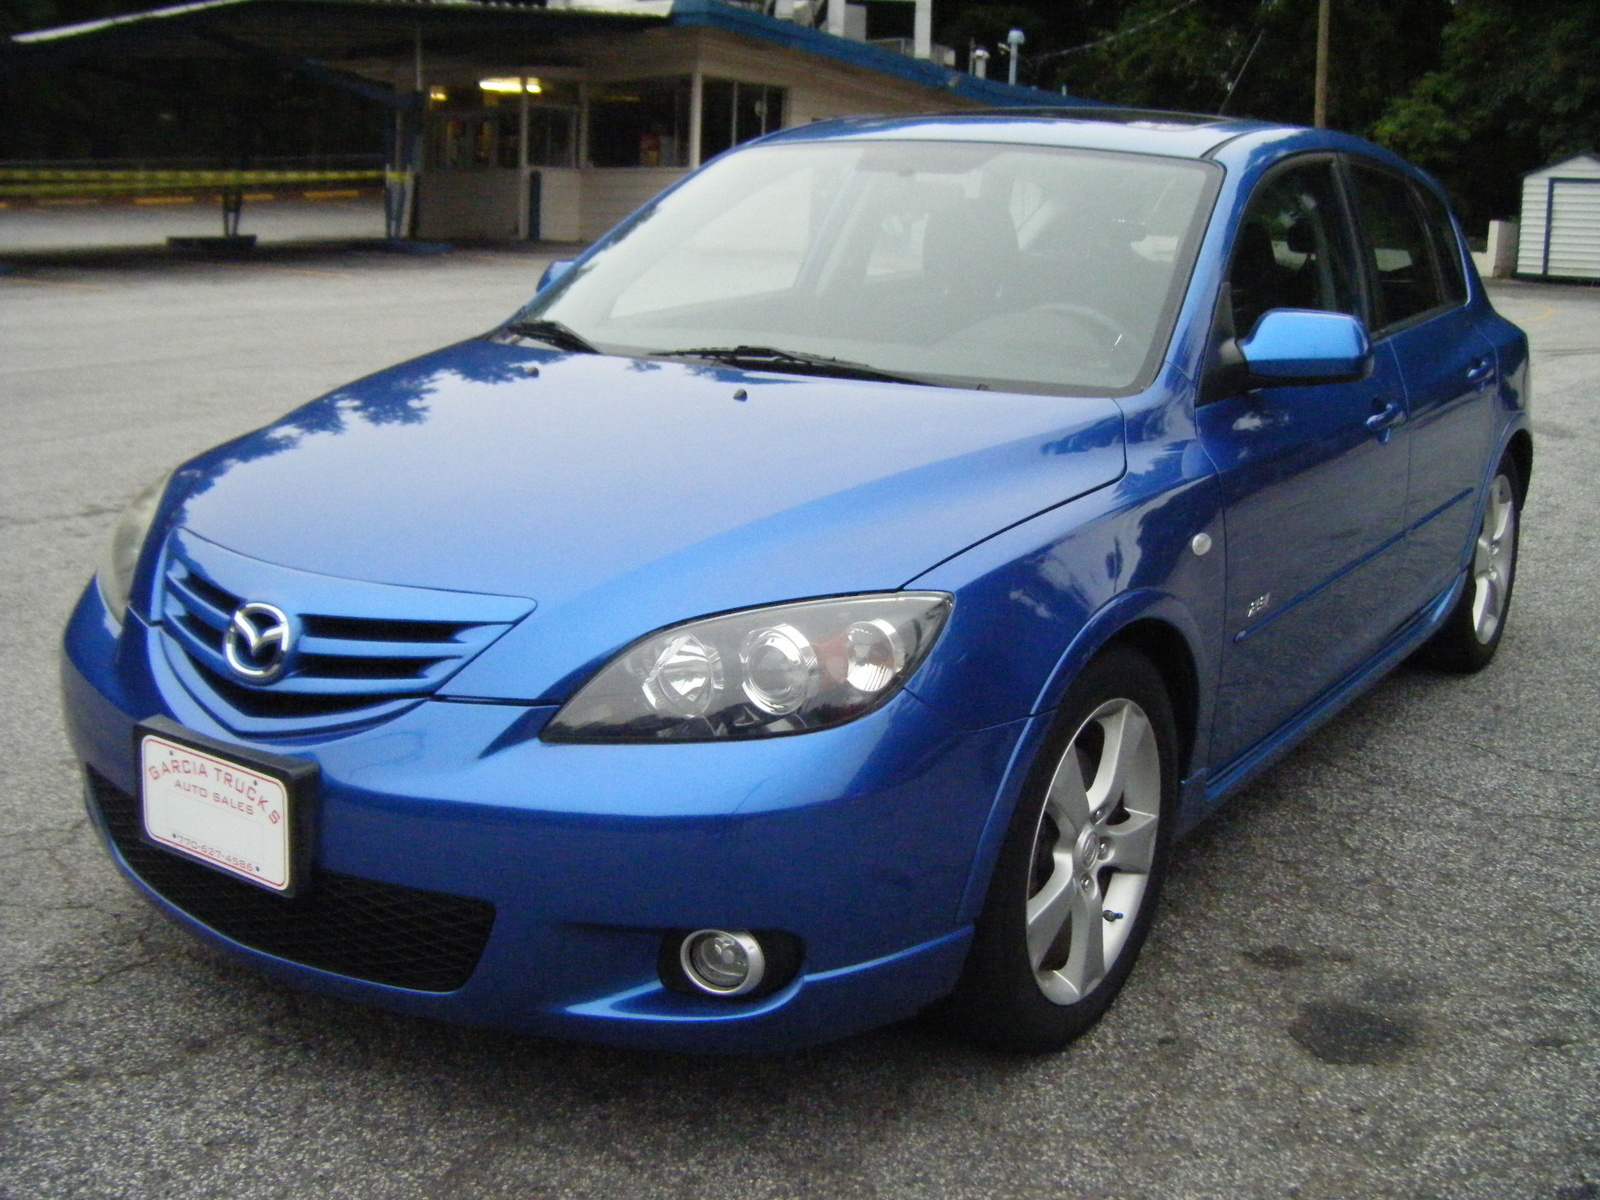 used 2005 mazda 3 hatchback pricing for sale edmunds. Black Bedroom Furniture Sets. Home Design Ideas